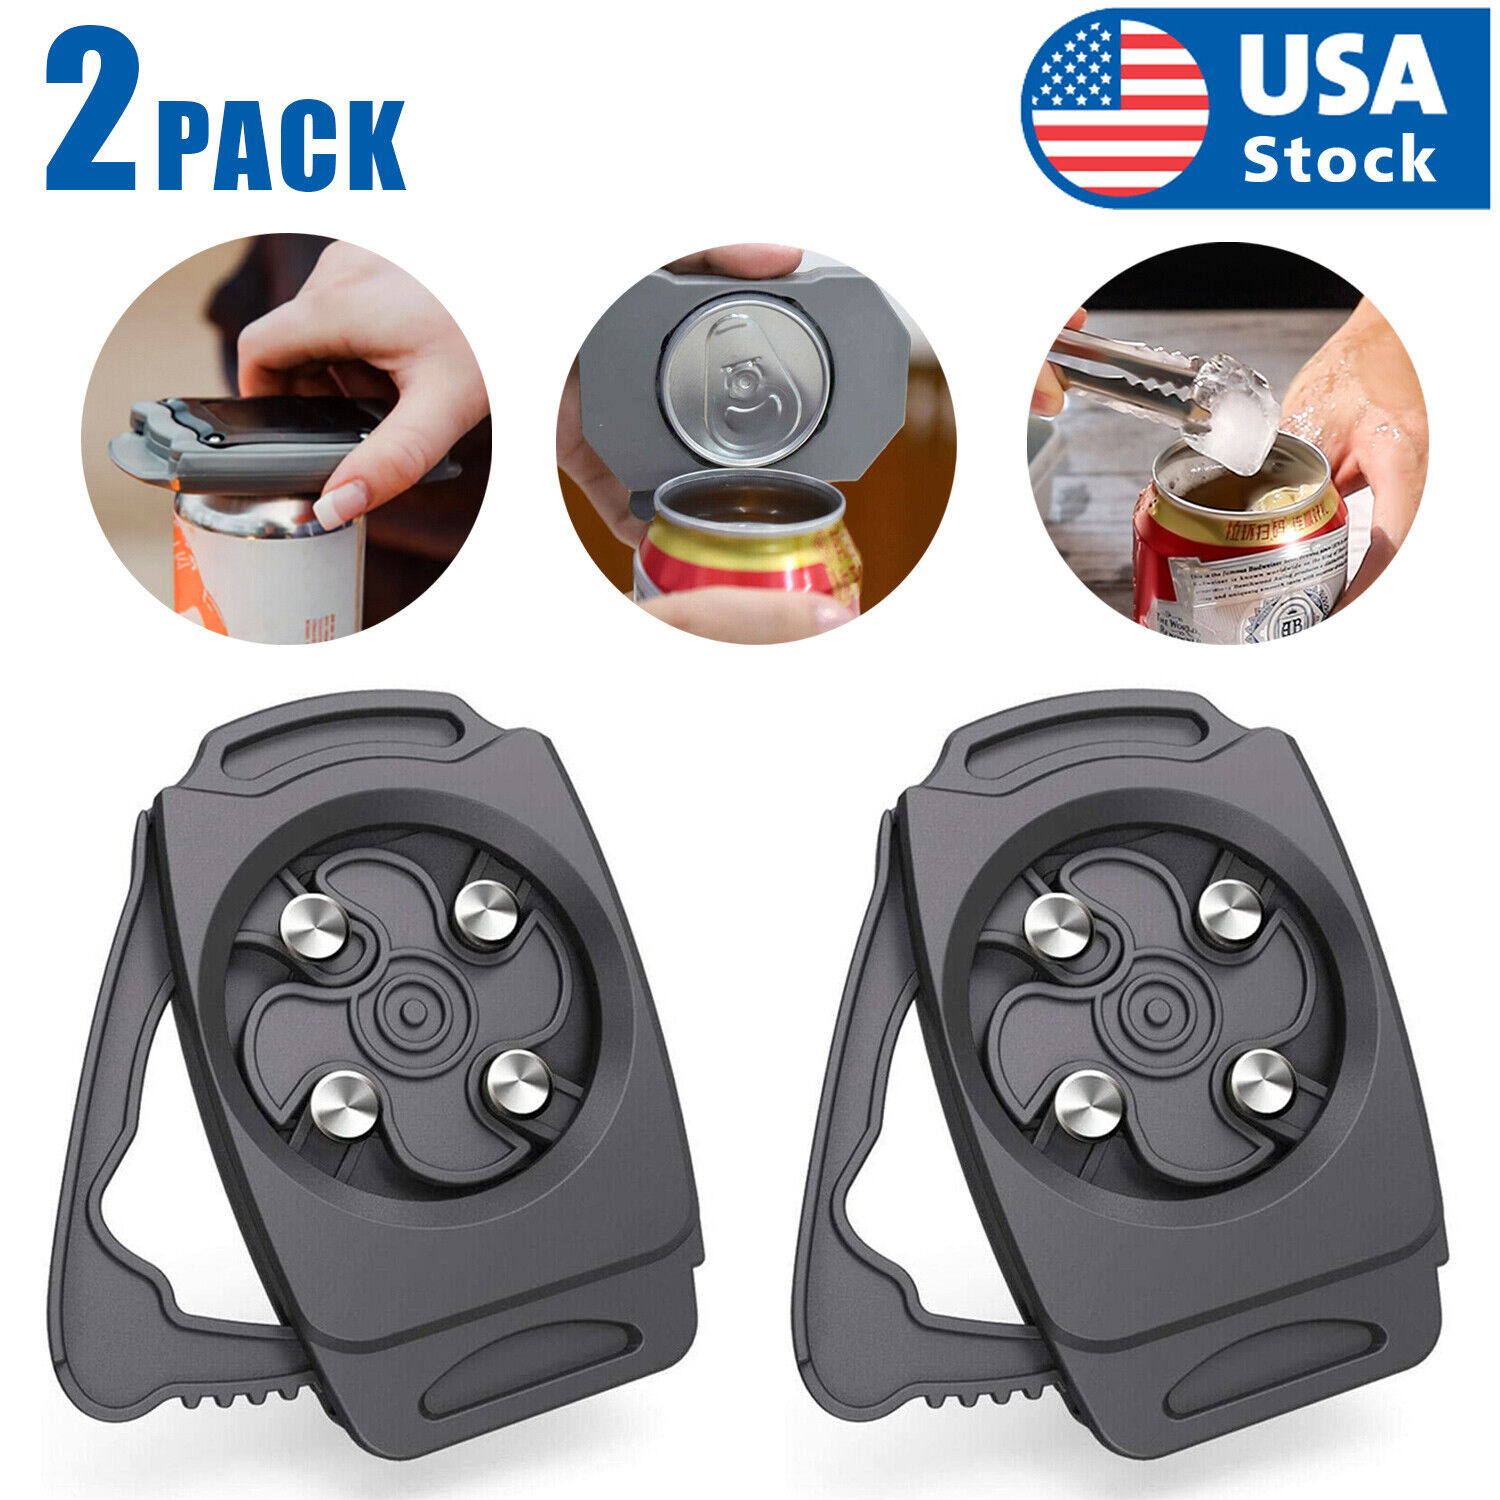 2PCS USA Topless Can Opener Bar Tool Safety Manual Opener Household Kitchen Tool Can Openers (Manual)